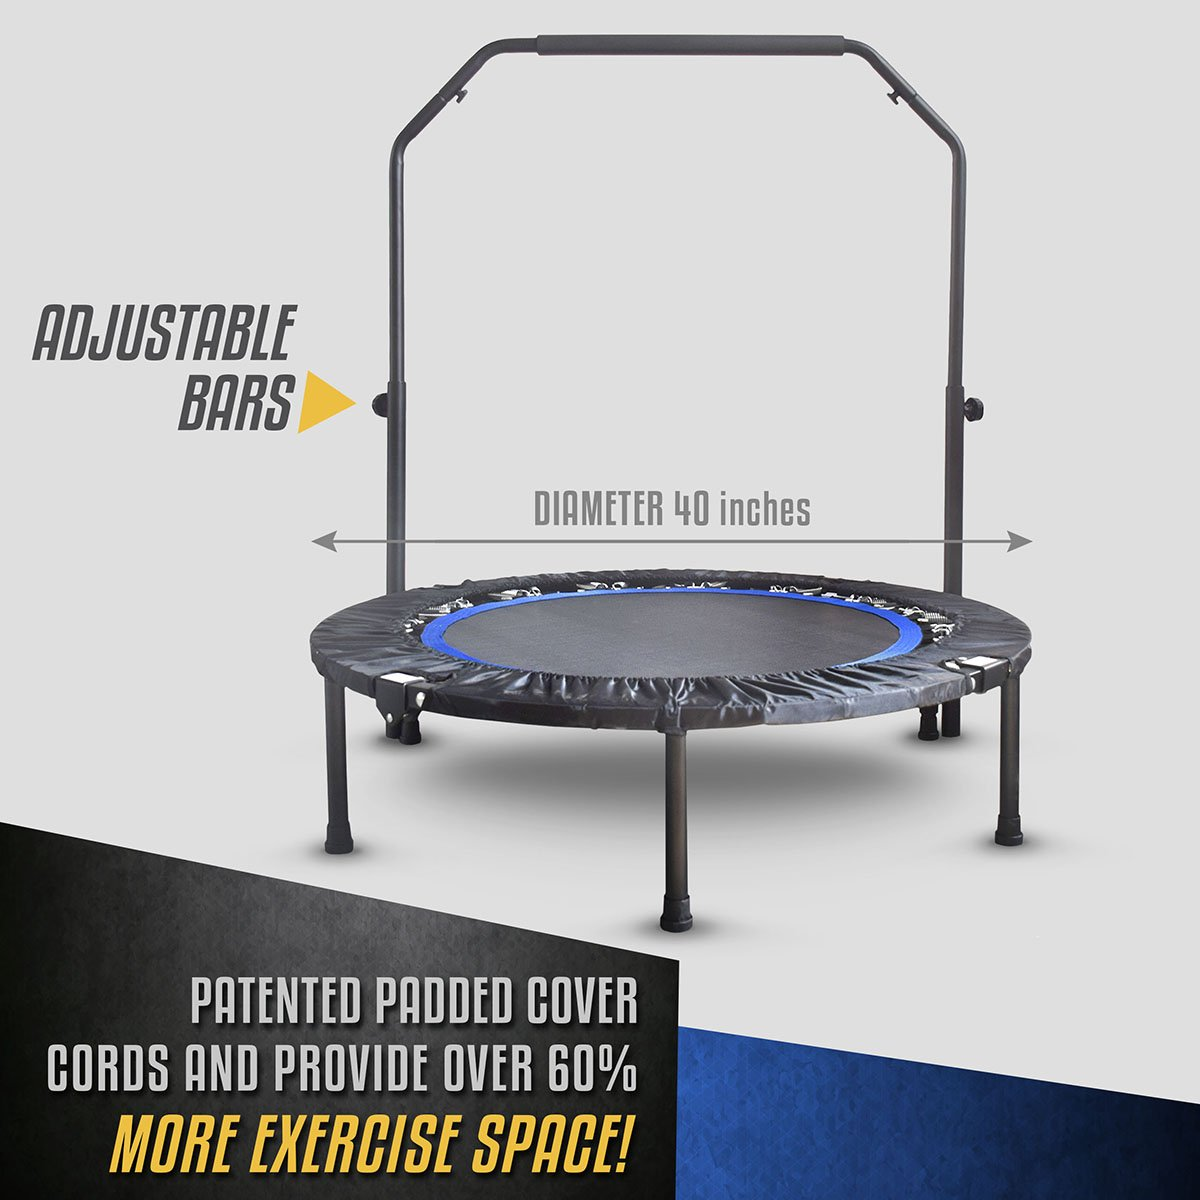 Mini Exercise Trampoline for Adults - Indoor Fitness Rebounder with Adjustable Handle Bar for Kids - Spring Cover and Folding Legs For Small Storage by Activox (Image #4)